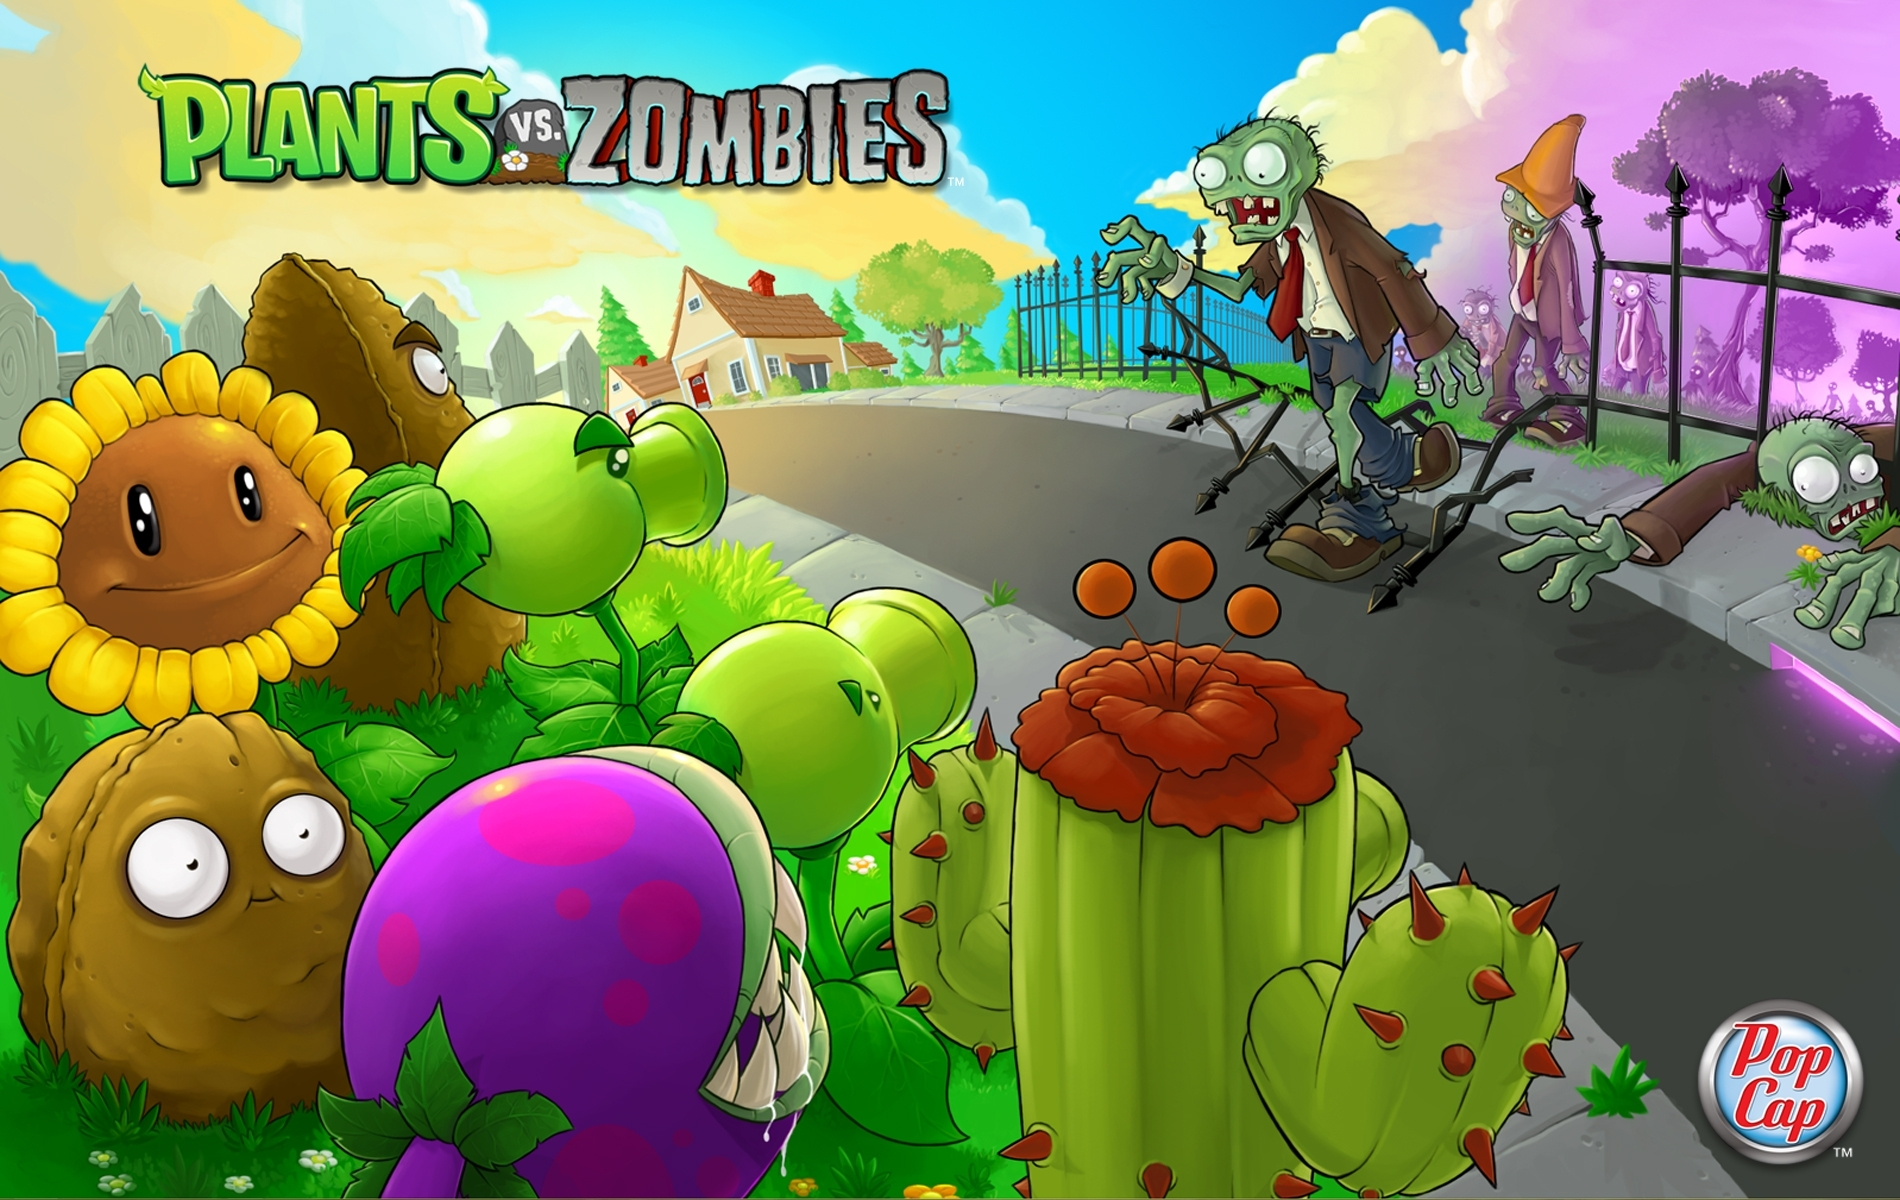 plants vs. zombies images plants vs zombies wallpaper hd wallpaper